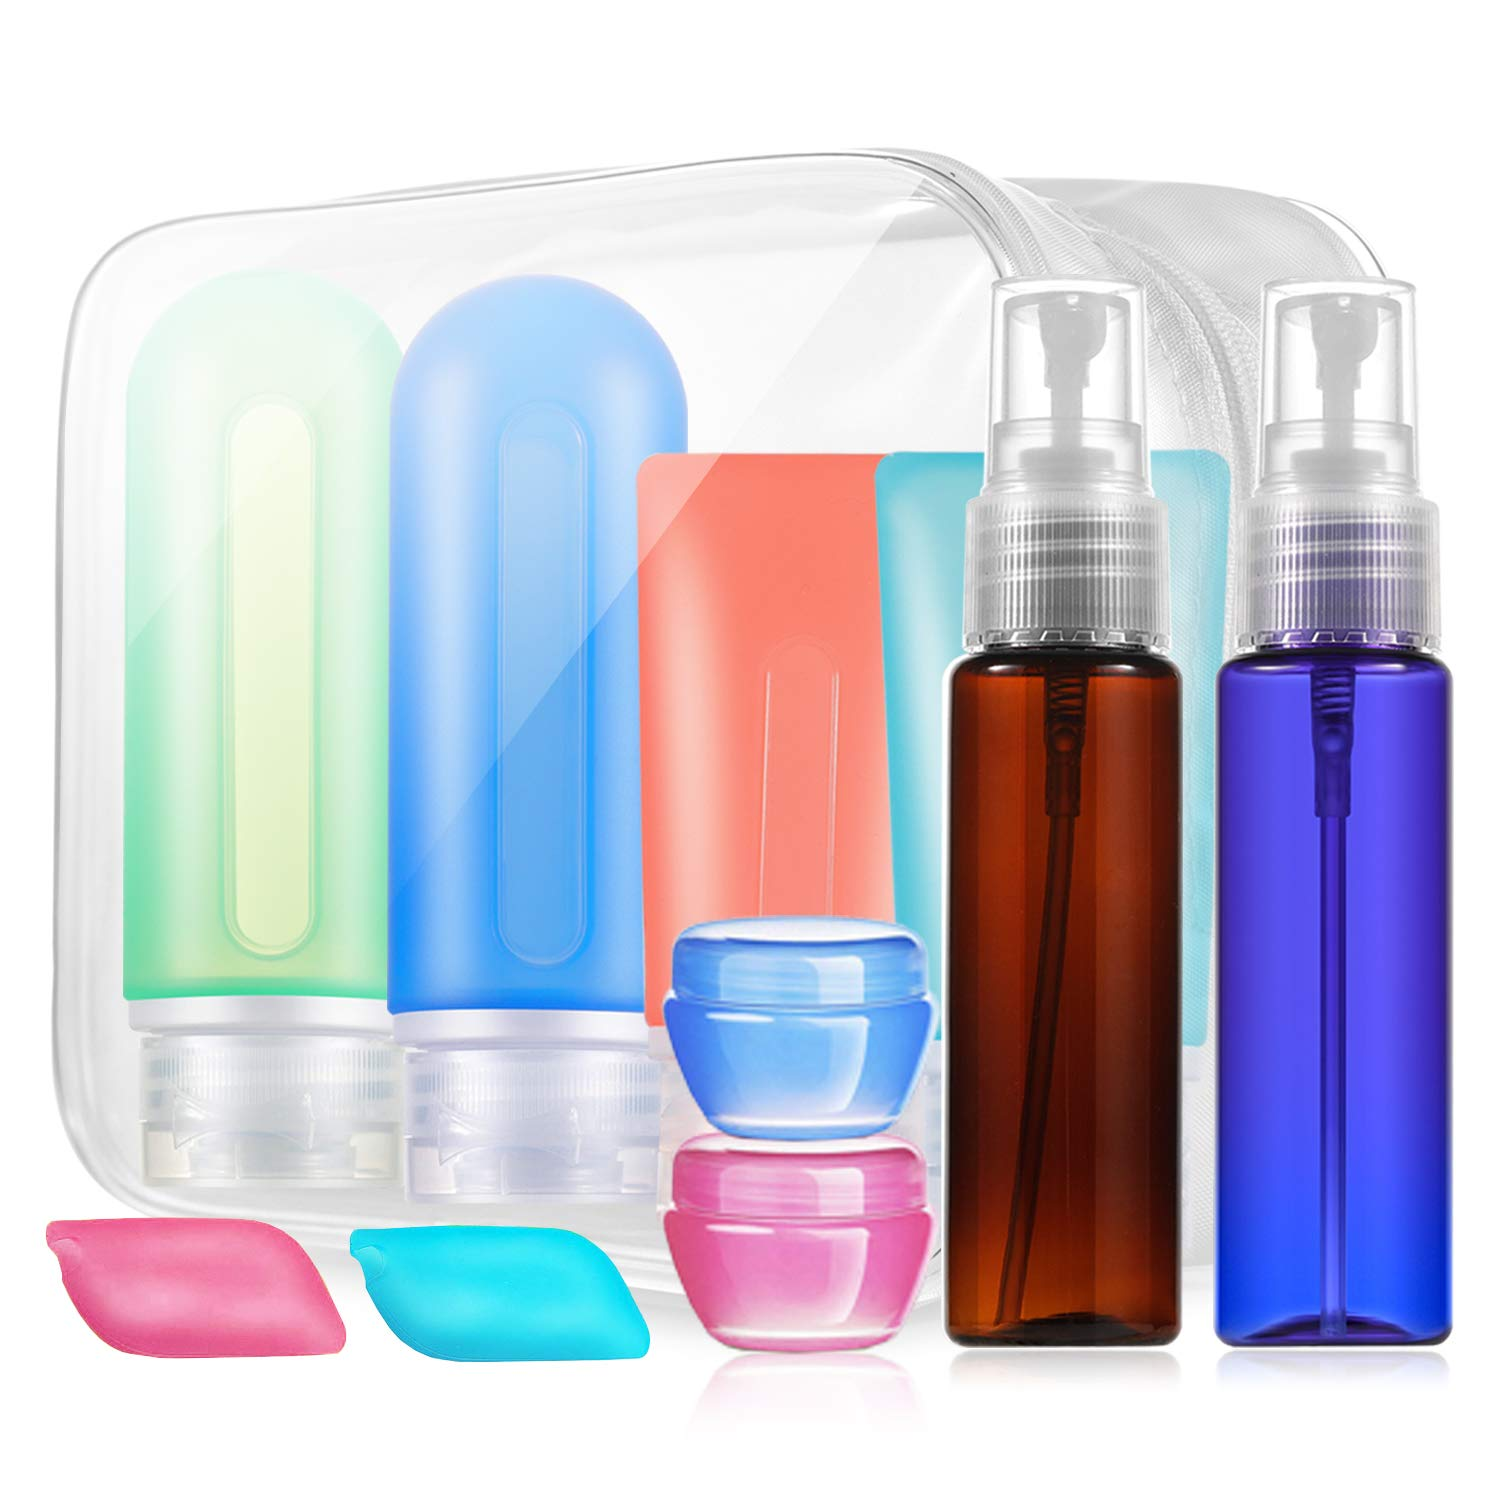 Travel Bottles Set TSA Approved, Leakproof Travel Size Containers Accessories-Spray Bottles Silicone Squeeze Bottles For Toiletries Lotion liquids Hand Sanitizer/Gel Hand Soap etc,With Bag